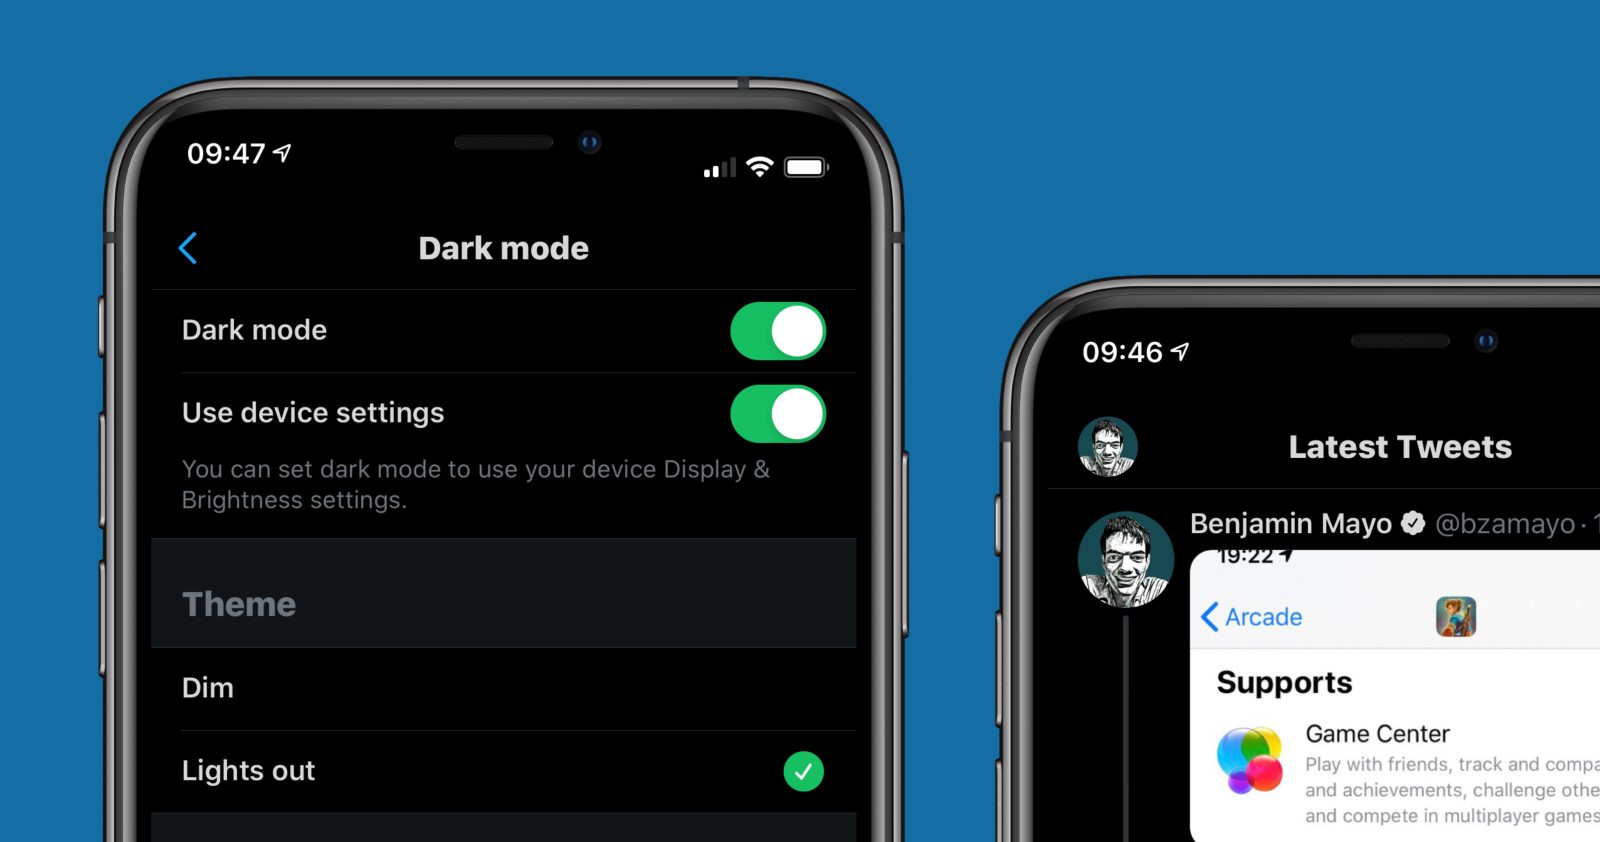 Twitter now supports iOS 13 Dark Mode, here's how to enable it